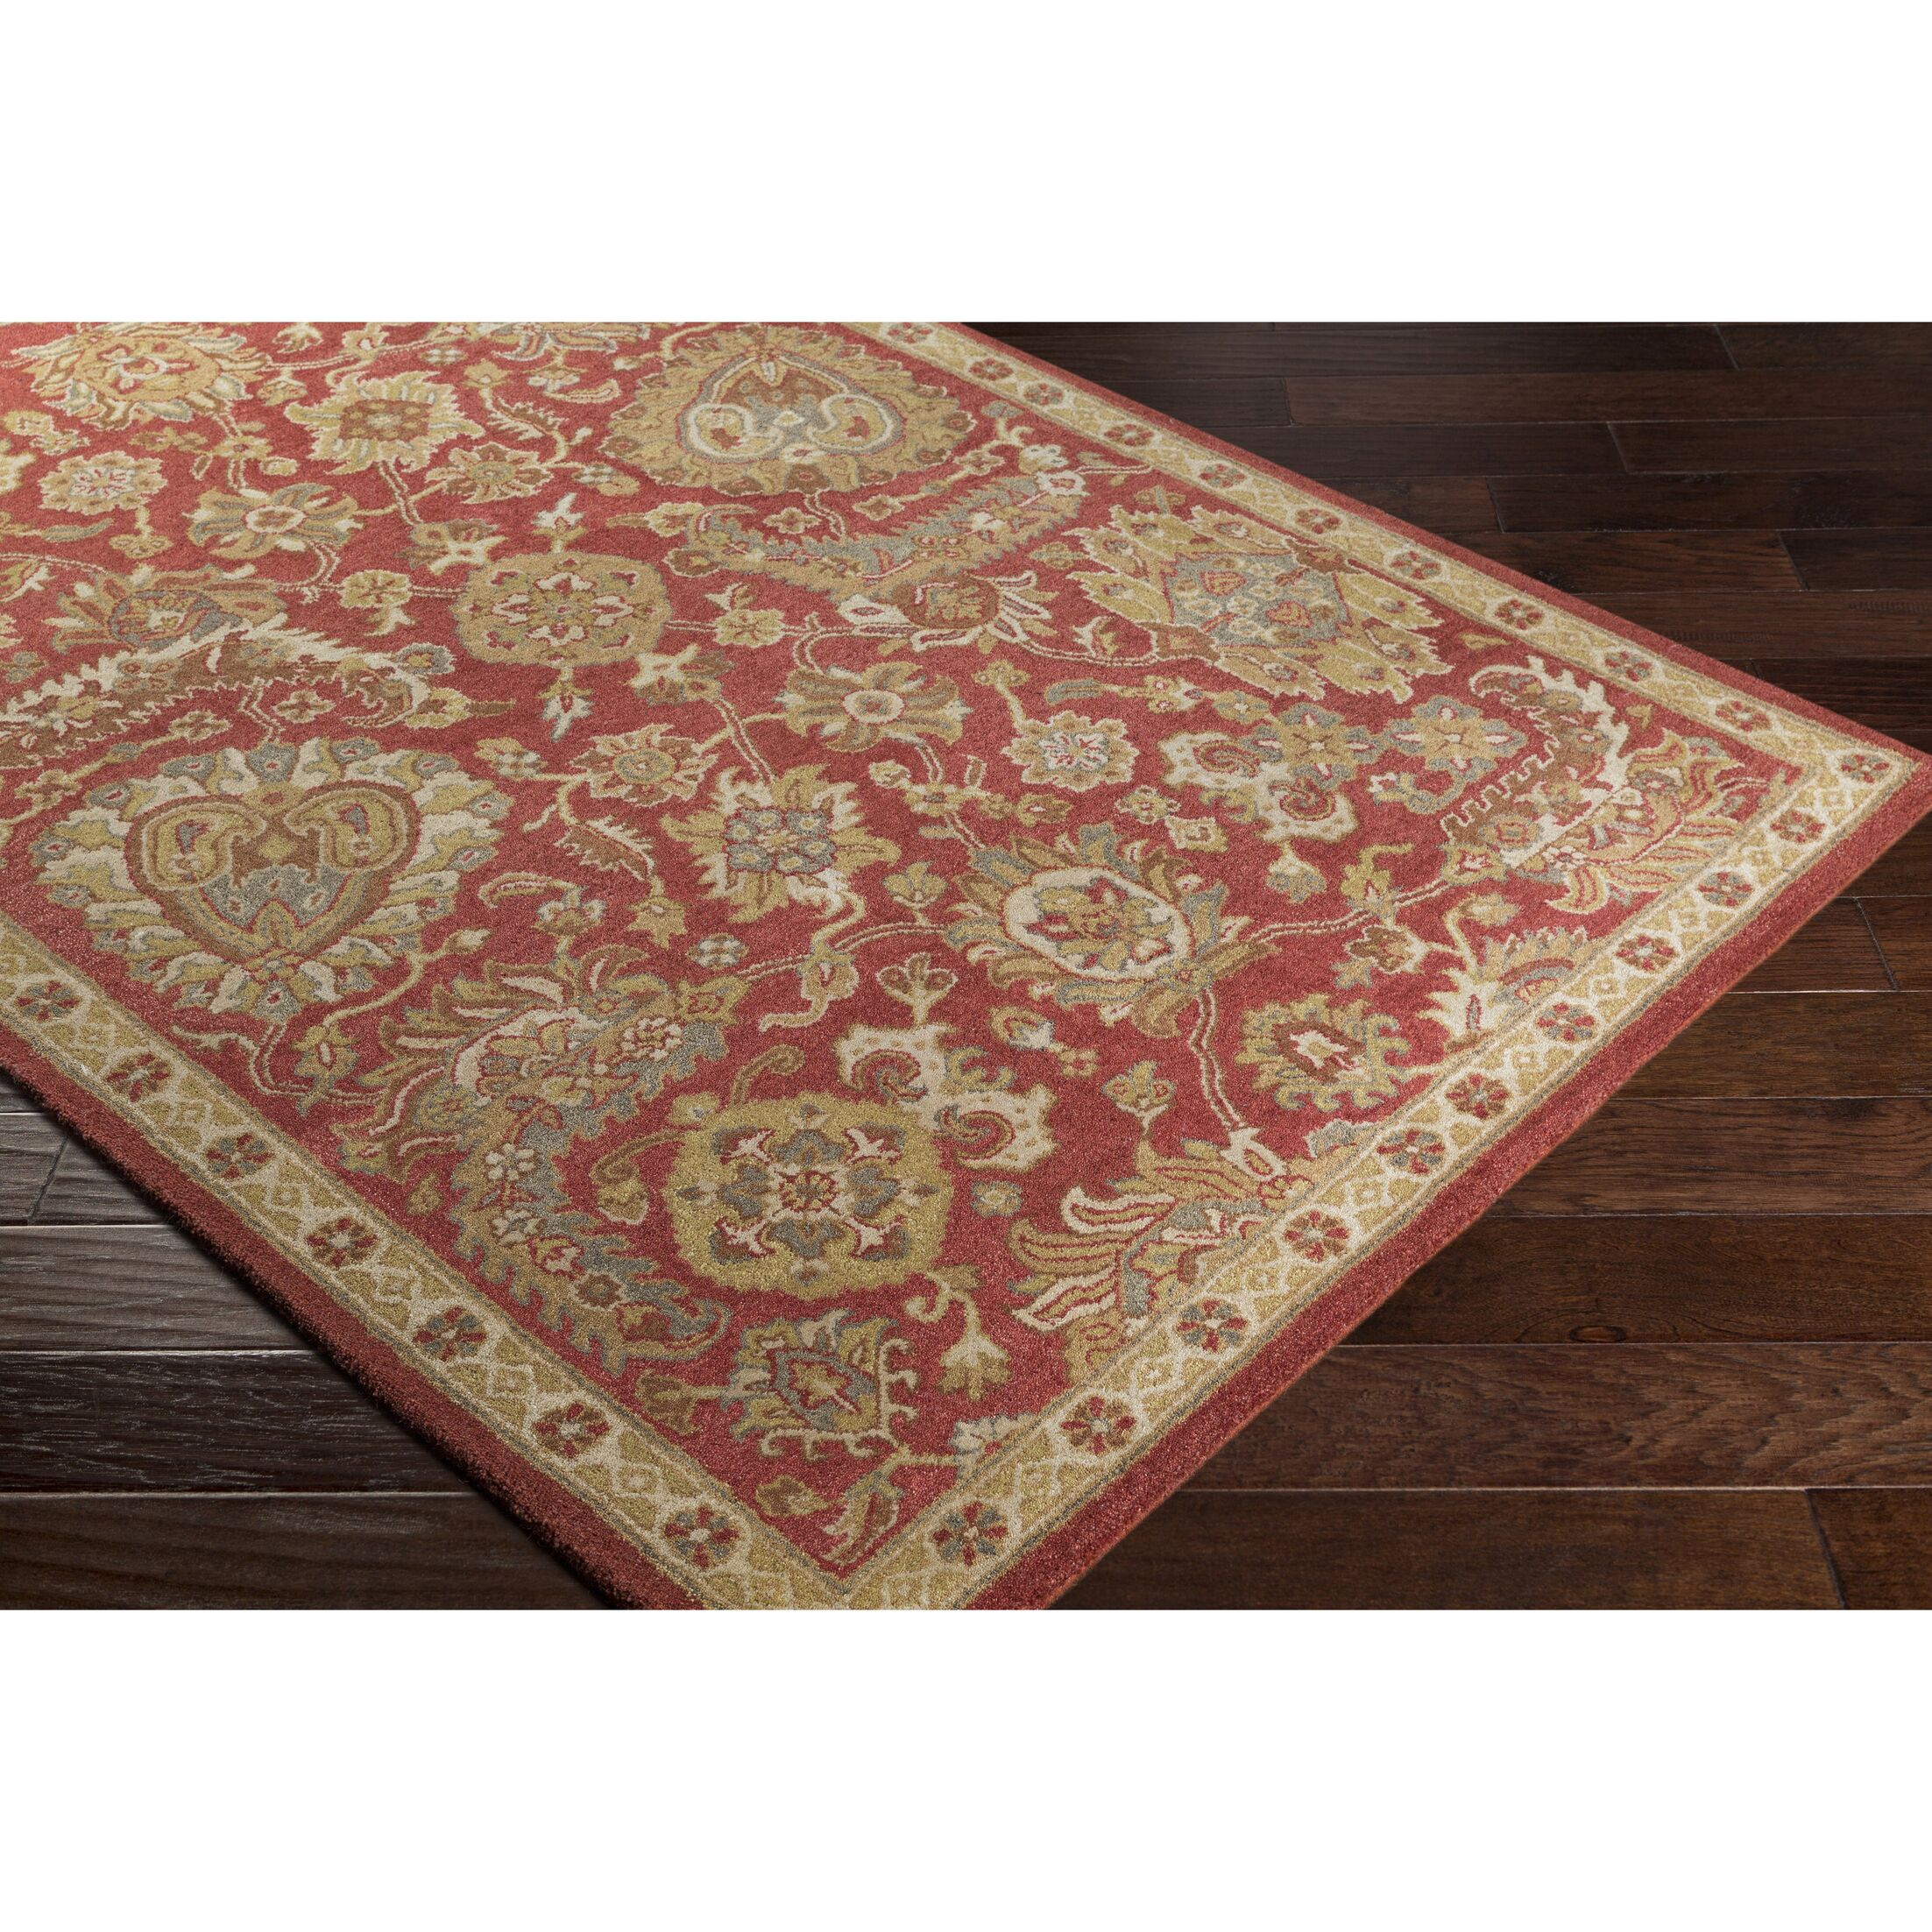 Garrison Hand-Tufted Rust/Tan Area Rug Rug Size: Rectangle 3'3